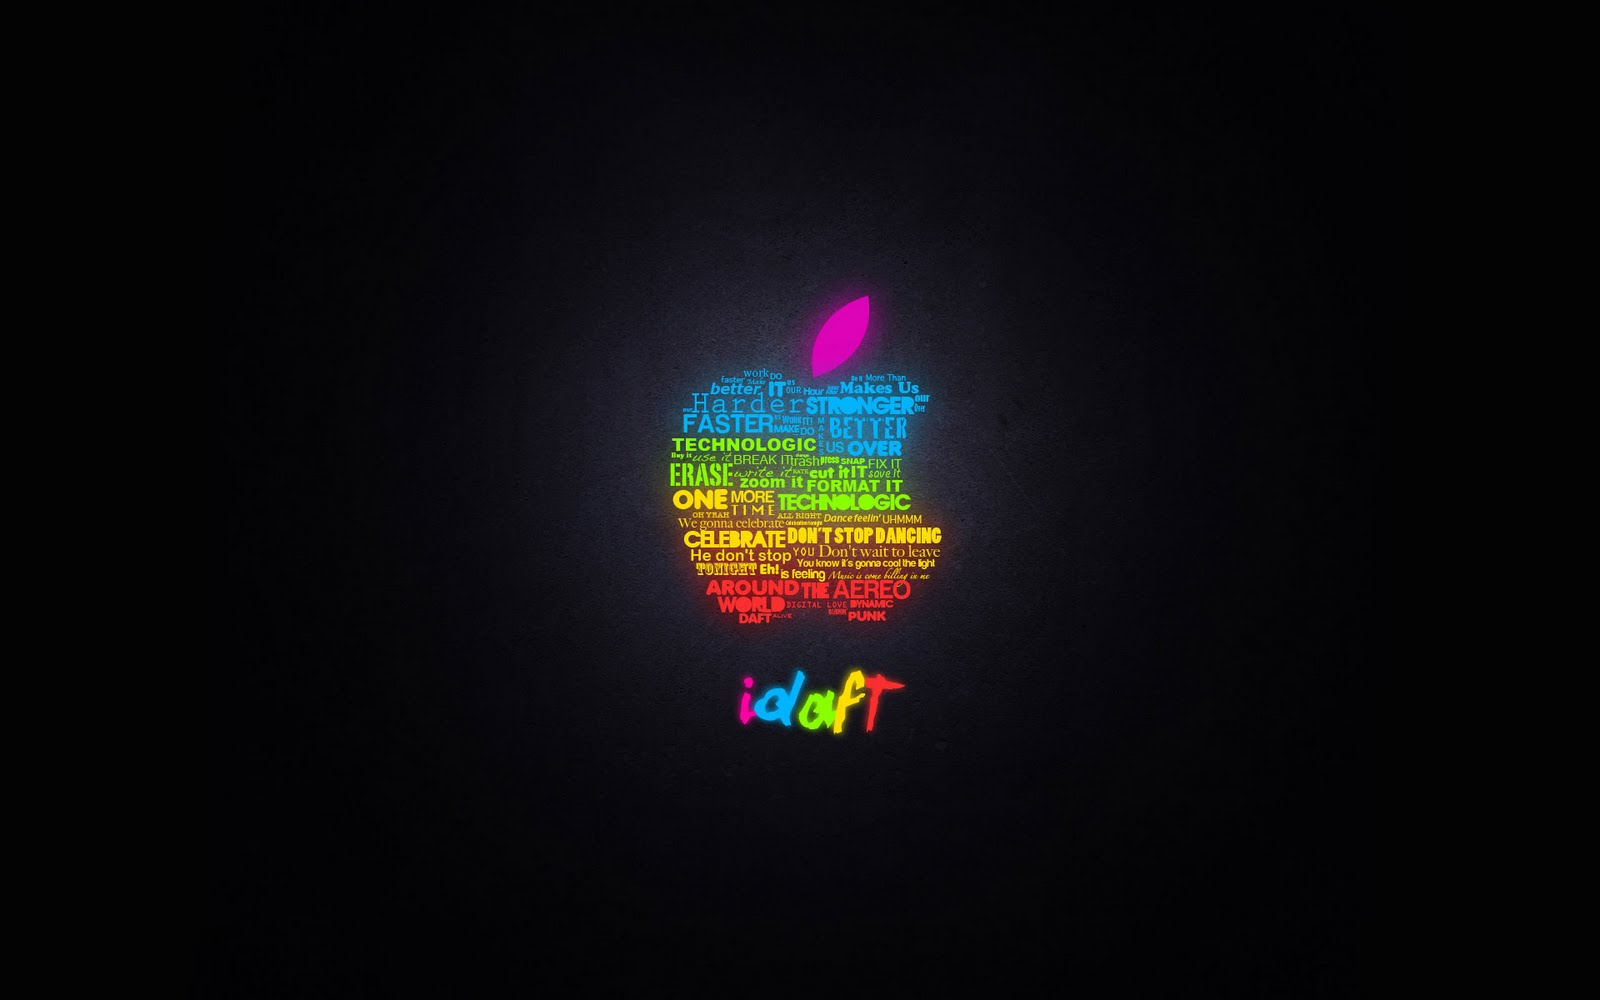 hd wallpapers apple logo hd wallpapers